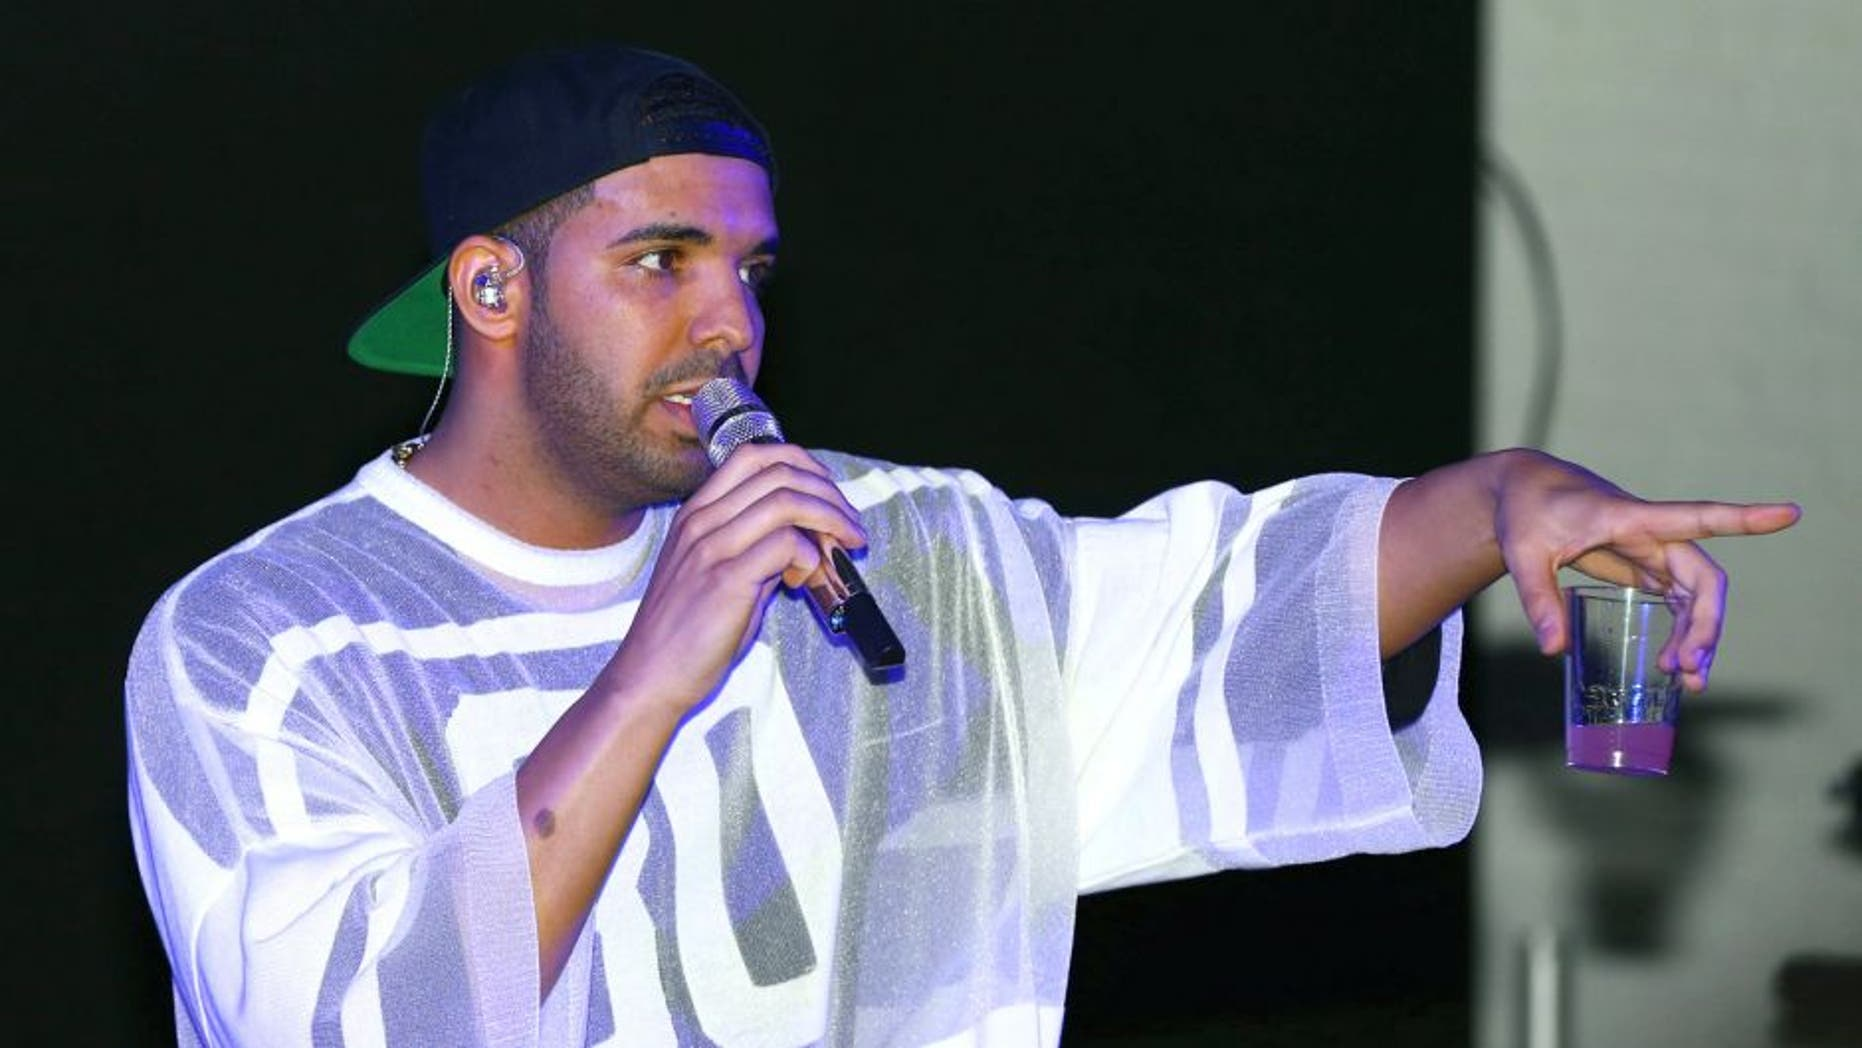 Feb 1, 2014; New York, NY, USA; Recording artist/rapper Drake performs during the Revolt Party at the Time Warner Cable Studios. Mandatory Credit: Mark J. Rebilas-USA TODAY Sports